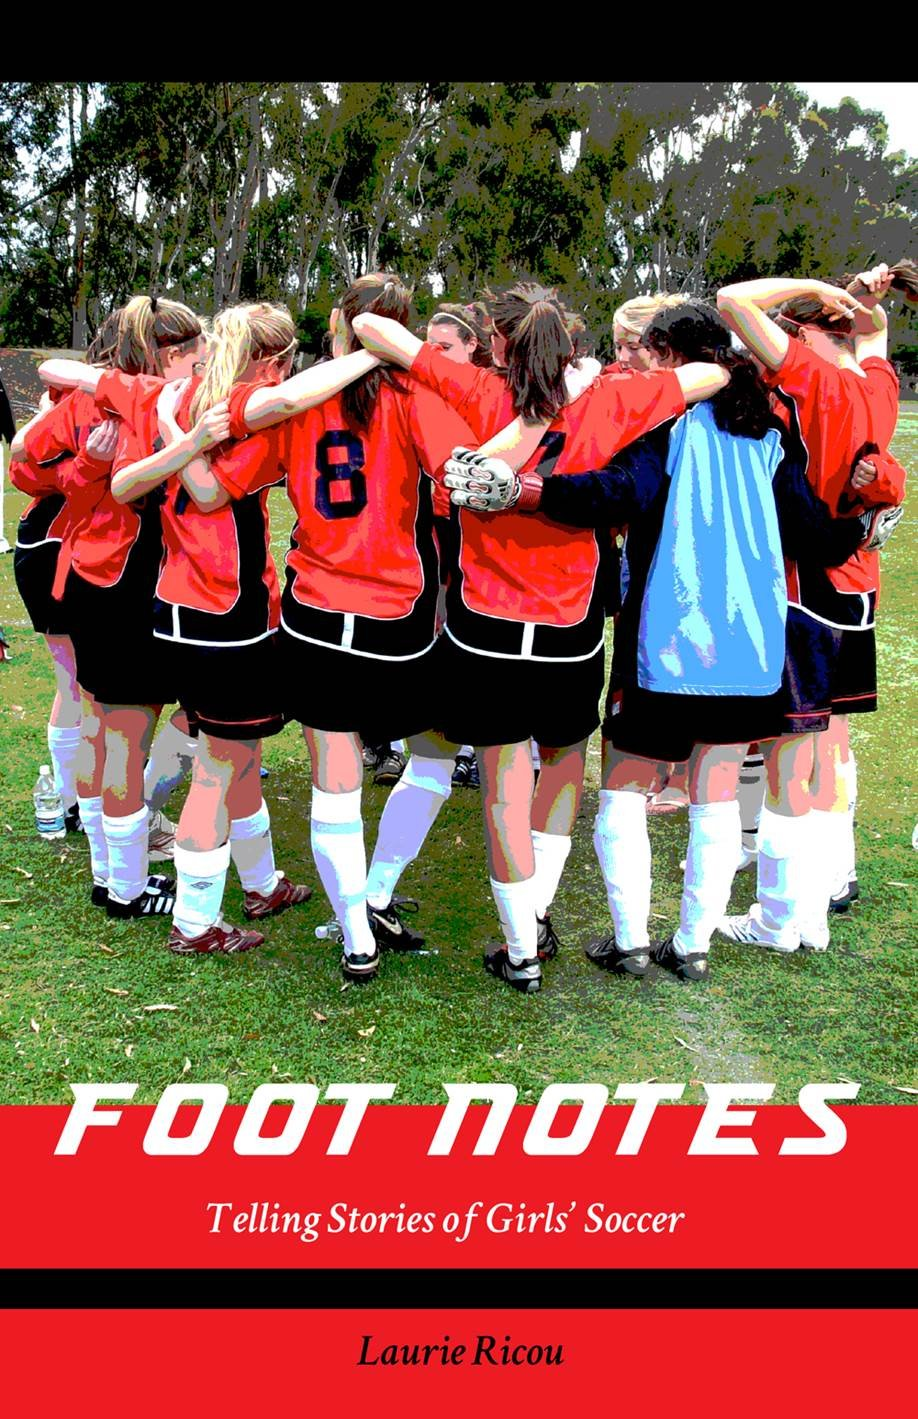 Foot Notes: Telling Stories of Girls Soccer